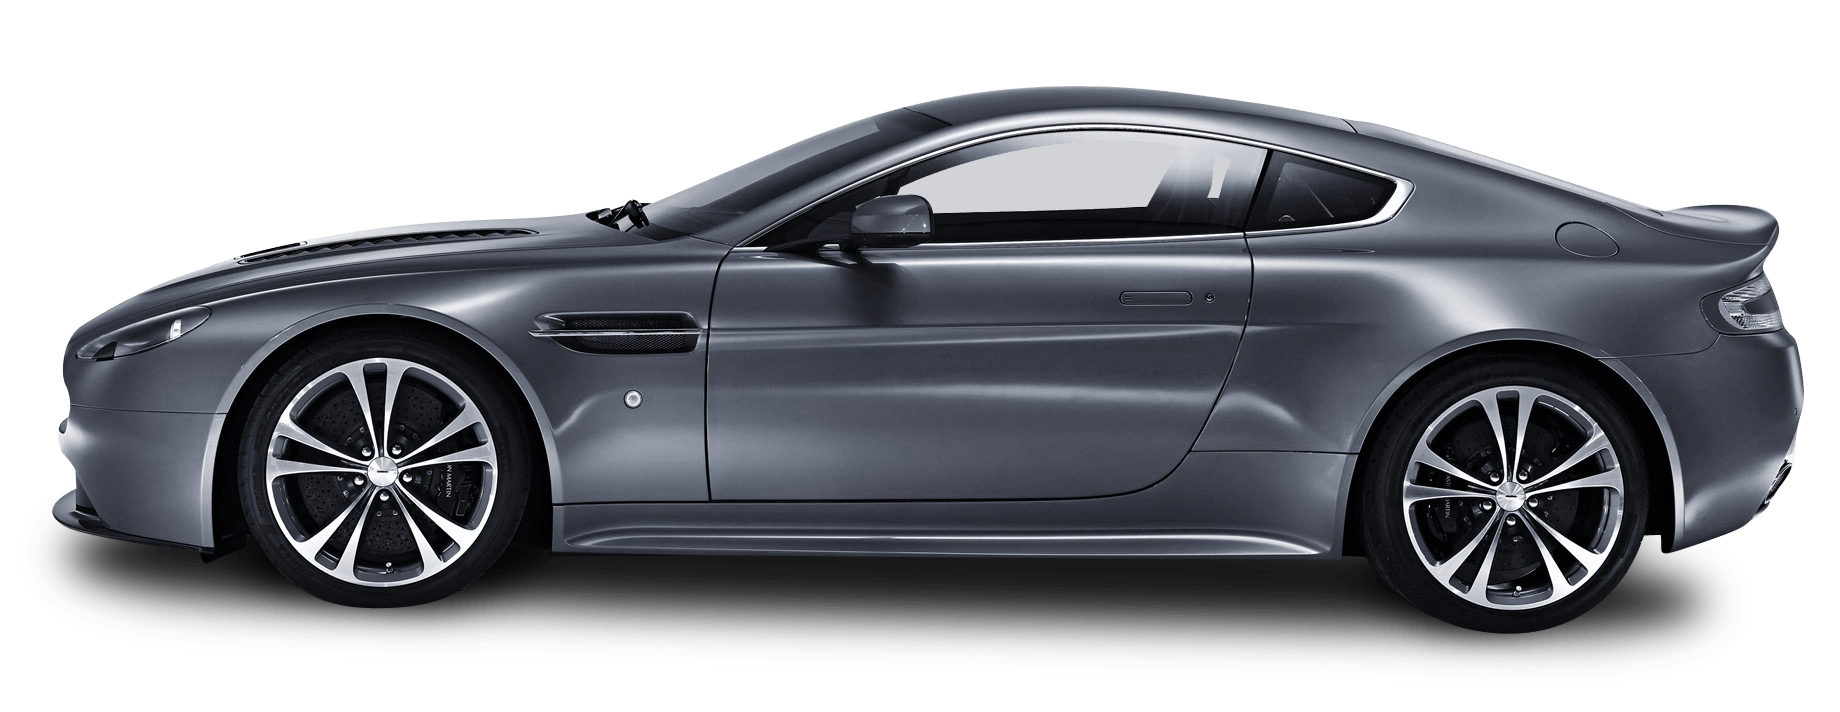 Car side view png. Sideview v aston martin